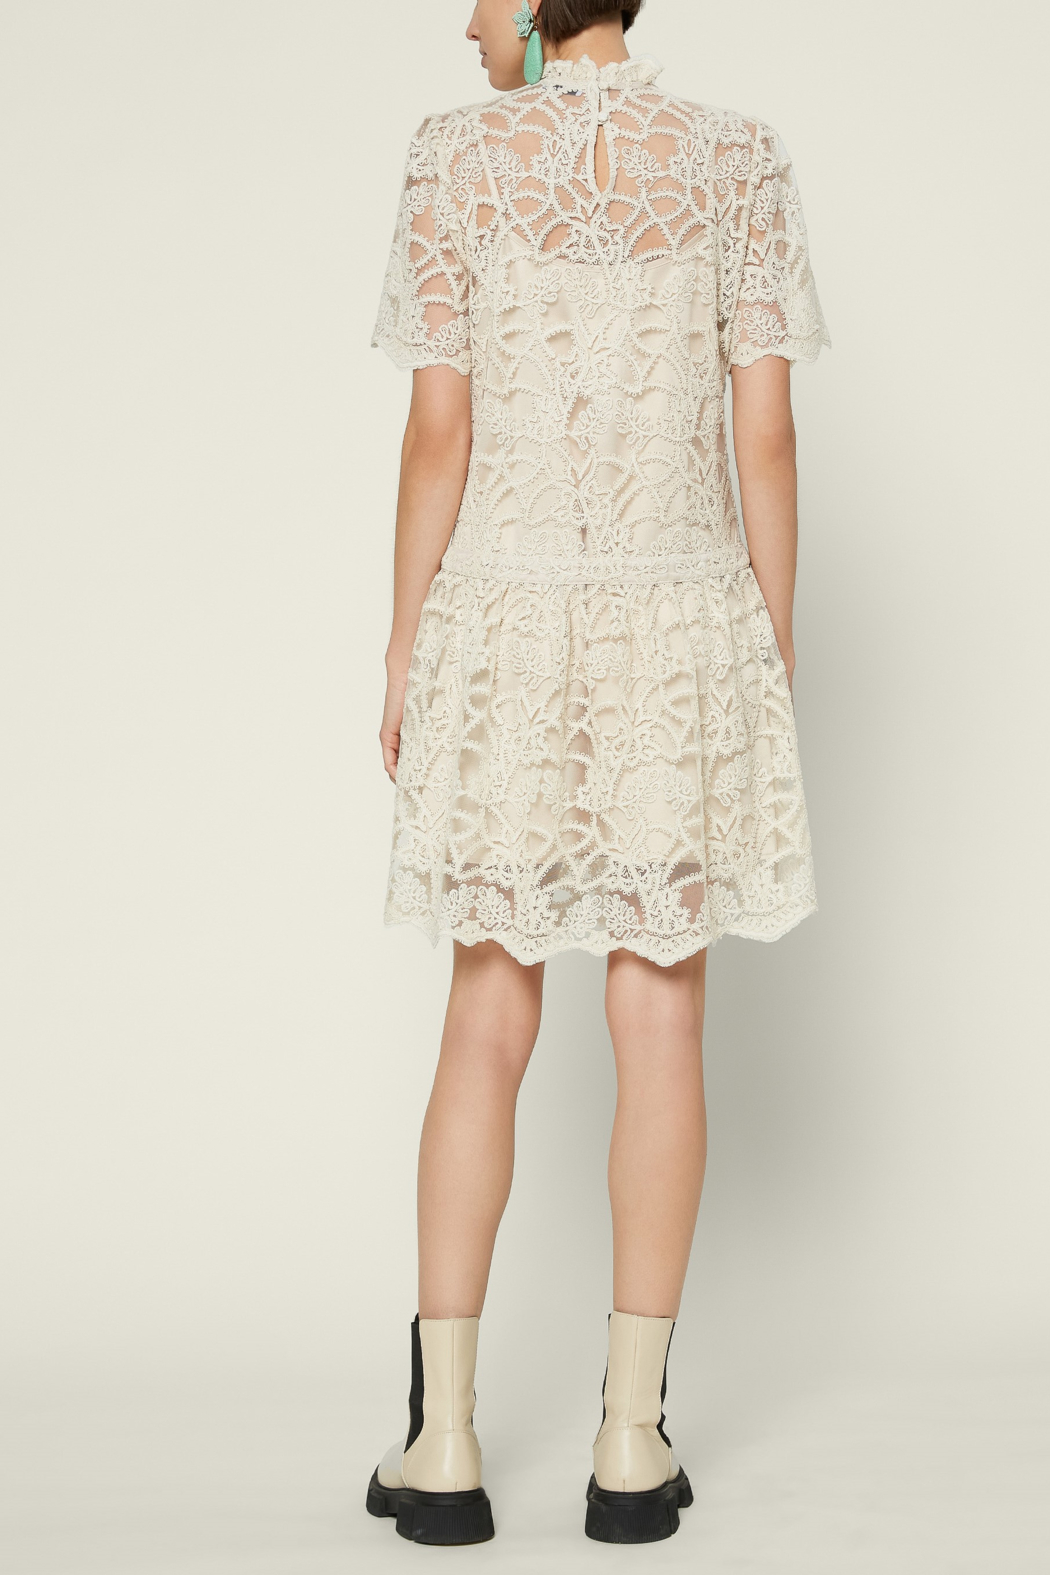 Current Air  Embellished Lace Mini Dress - Front Full Image